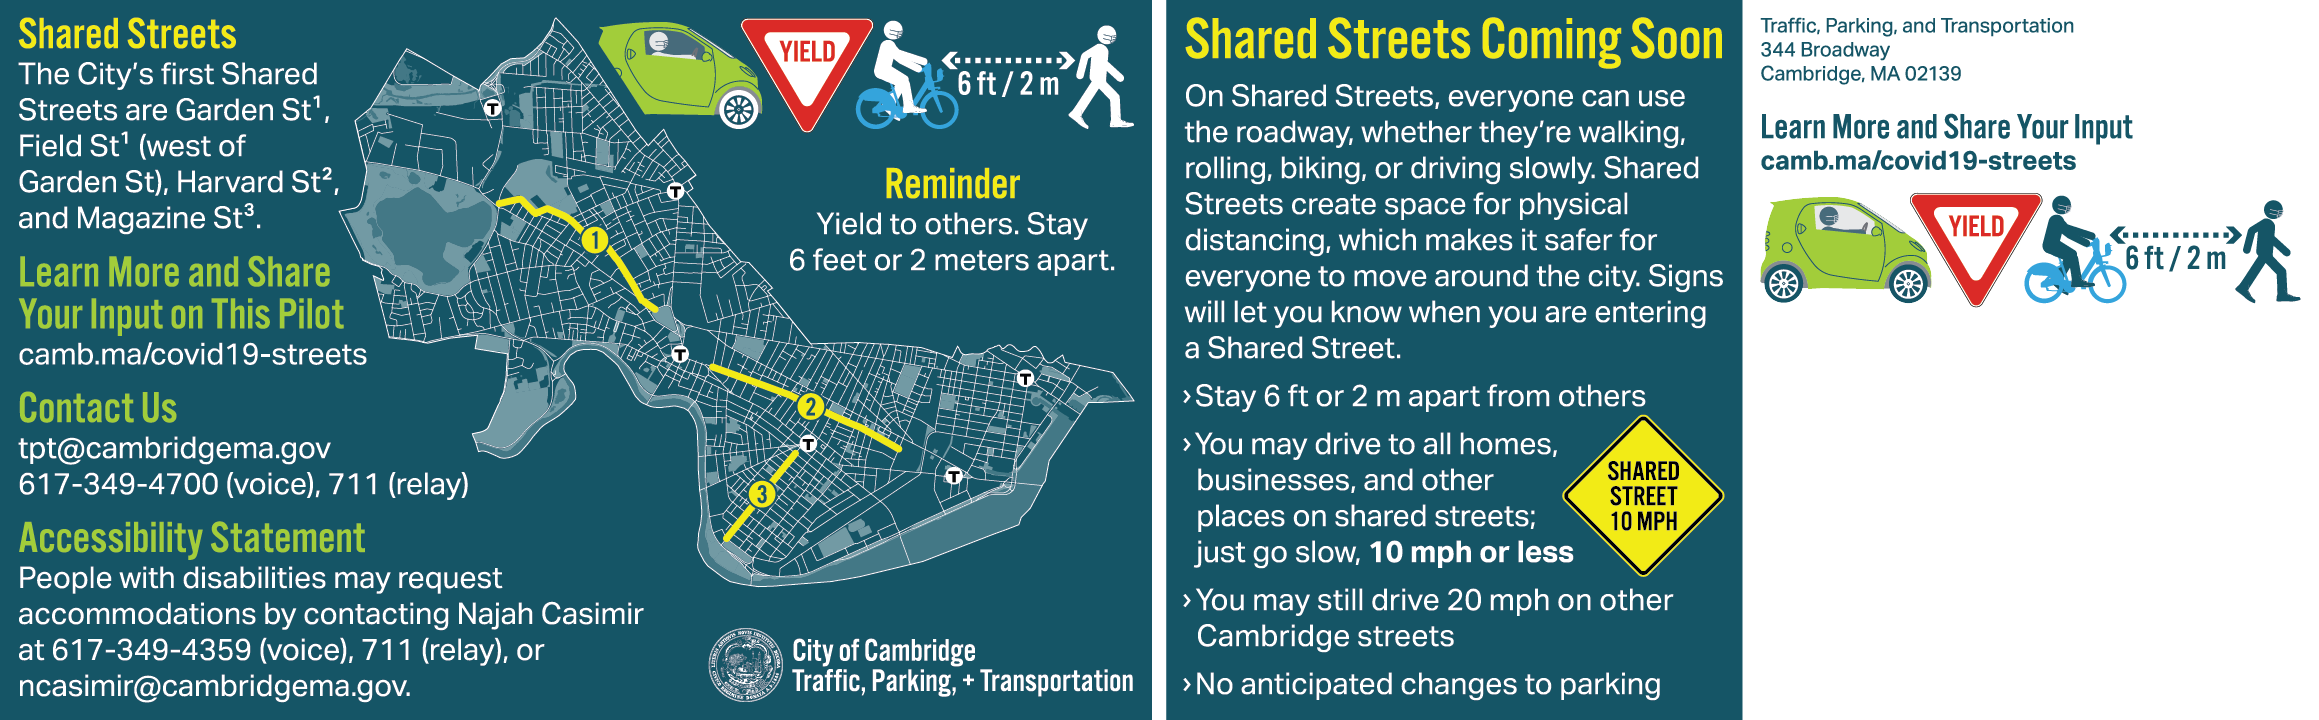 Postcard announcing the Shared Streets program